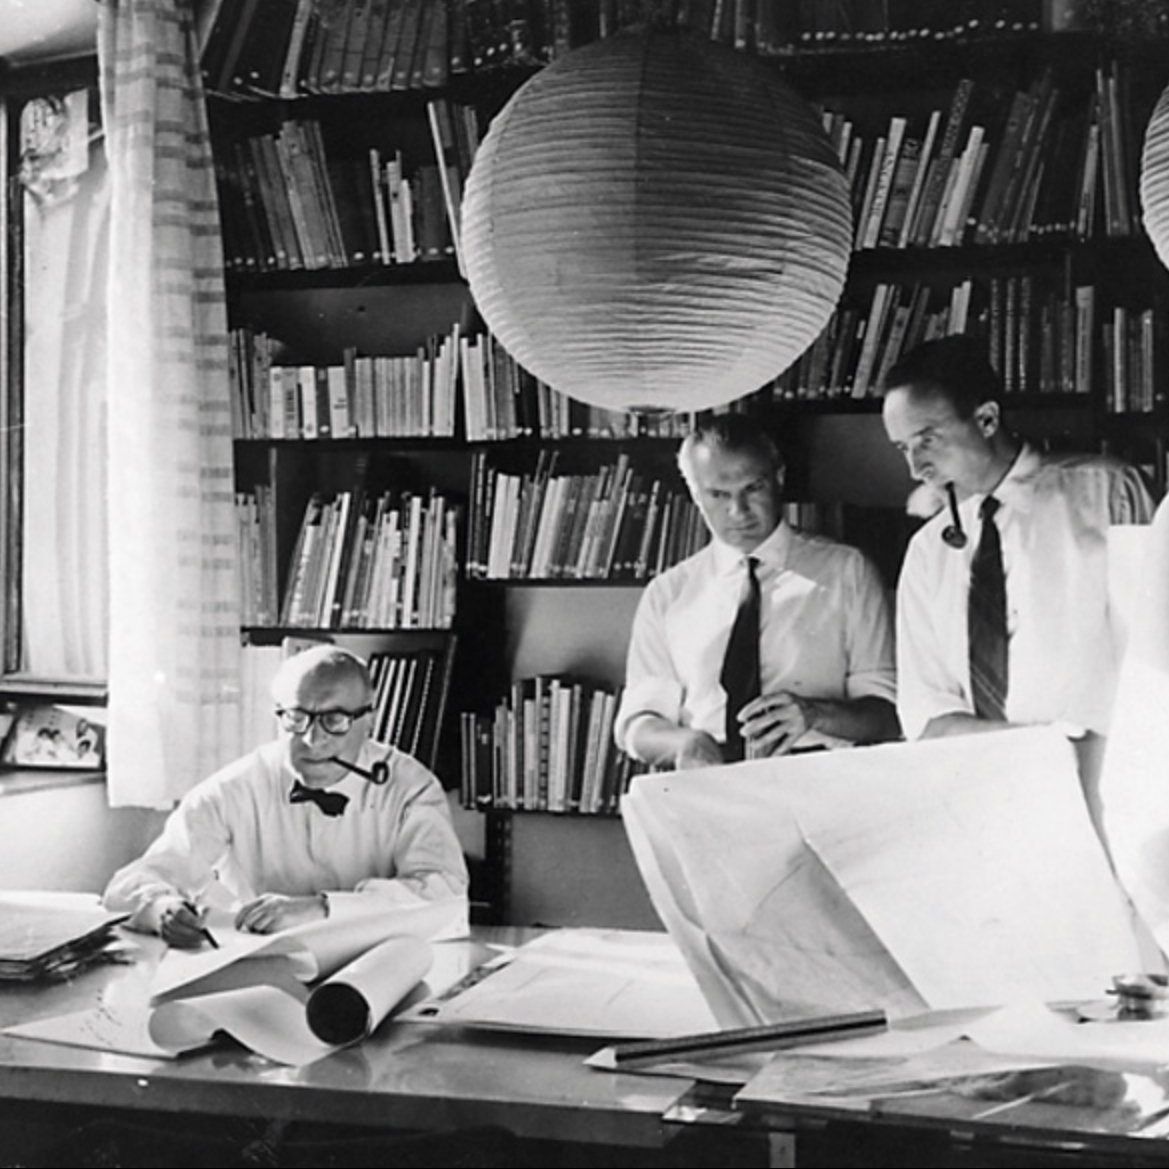 Studio BBPR, Left to right: Rogers, Peressutti and Belgiojoso in the studio of via dei Chiostri Image from Università IUAV di Venezia, Archivio Progetti, Fondo Fondazione Masieri